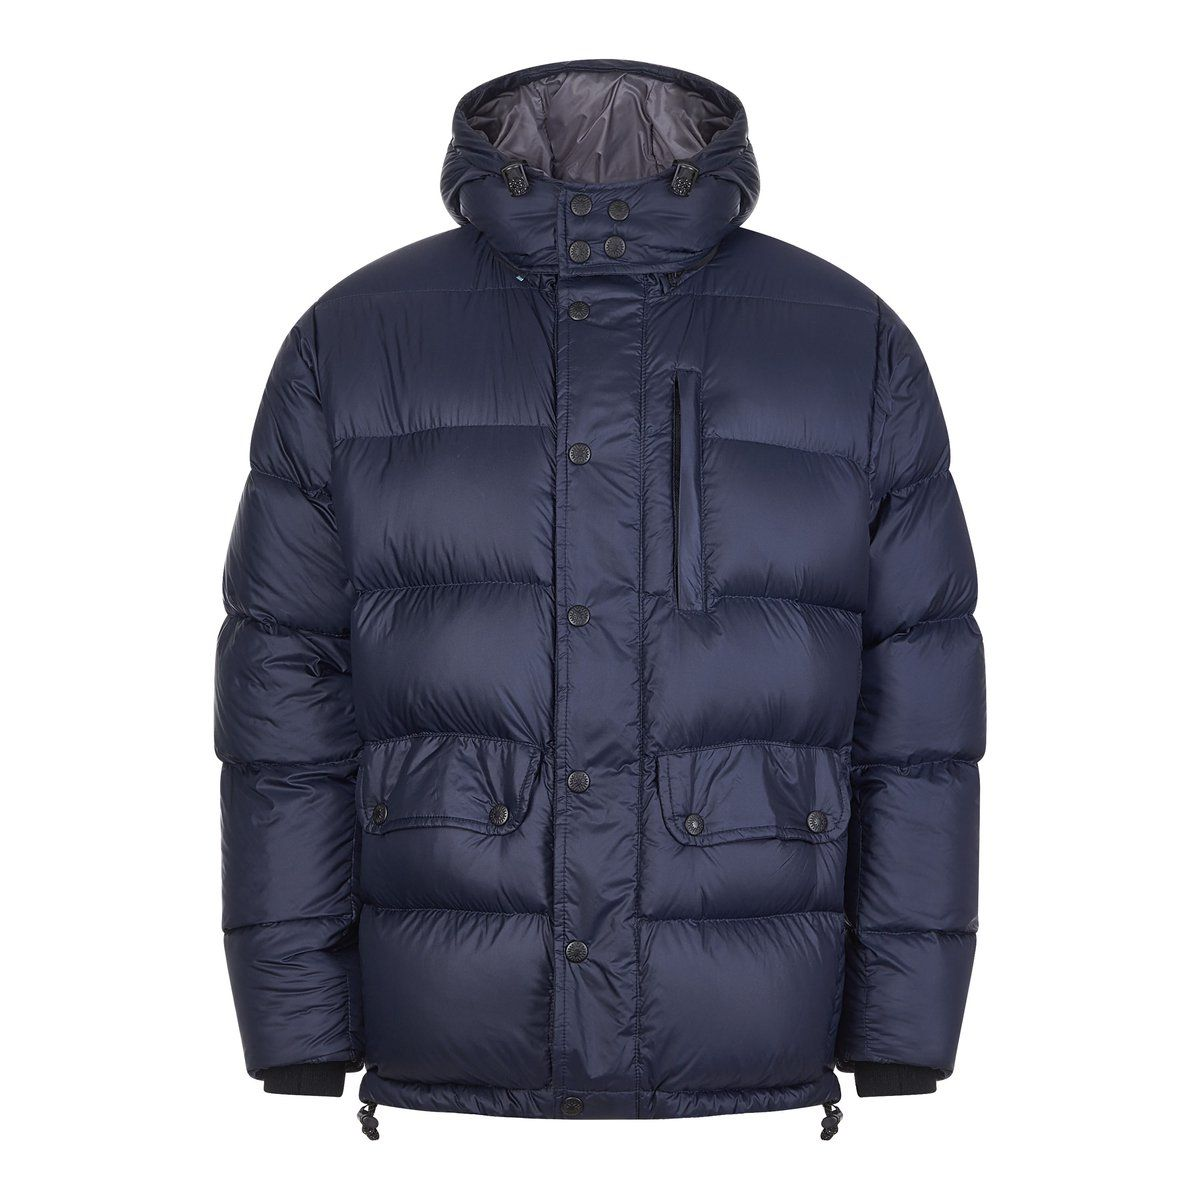 5cfccd7f6d0 With its mountaineering jacket design and pure goose down lining ...